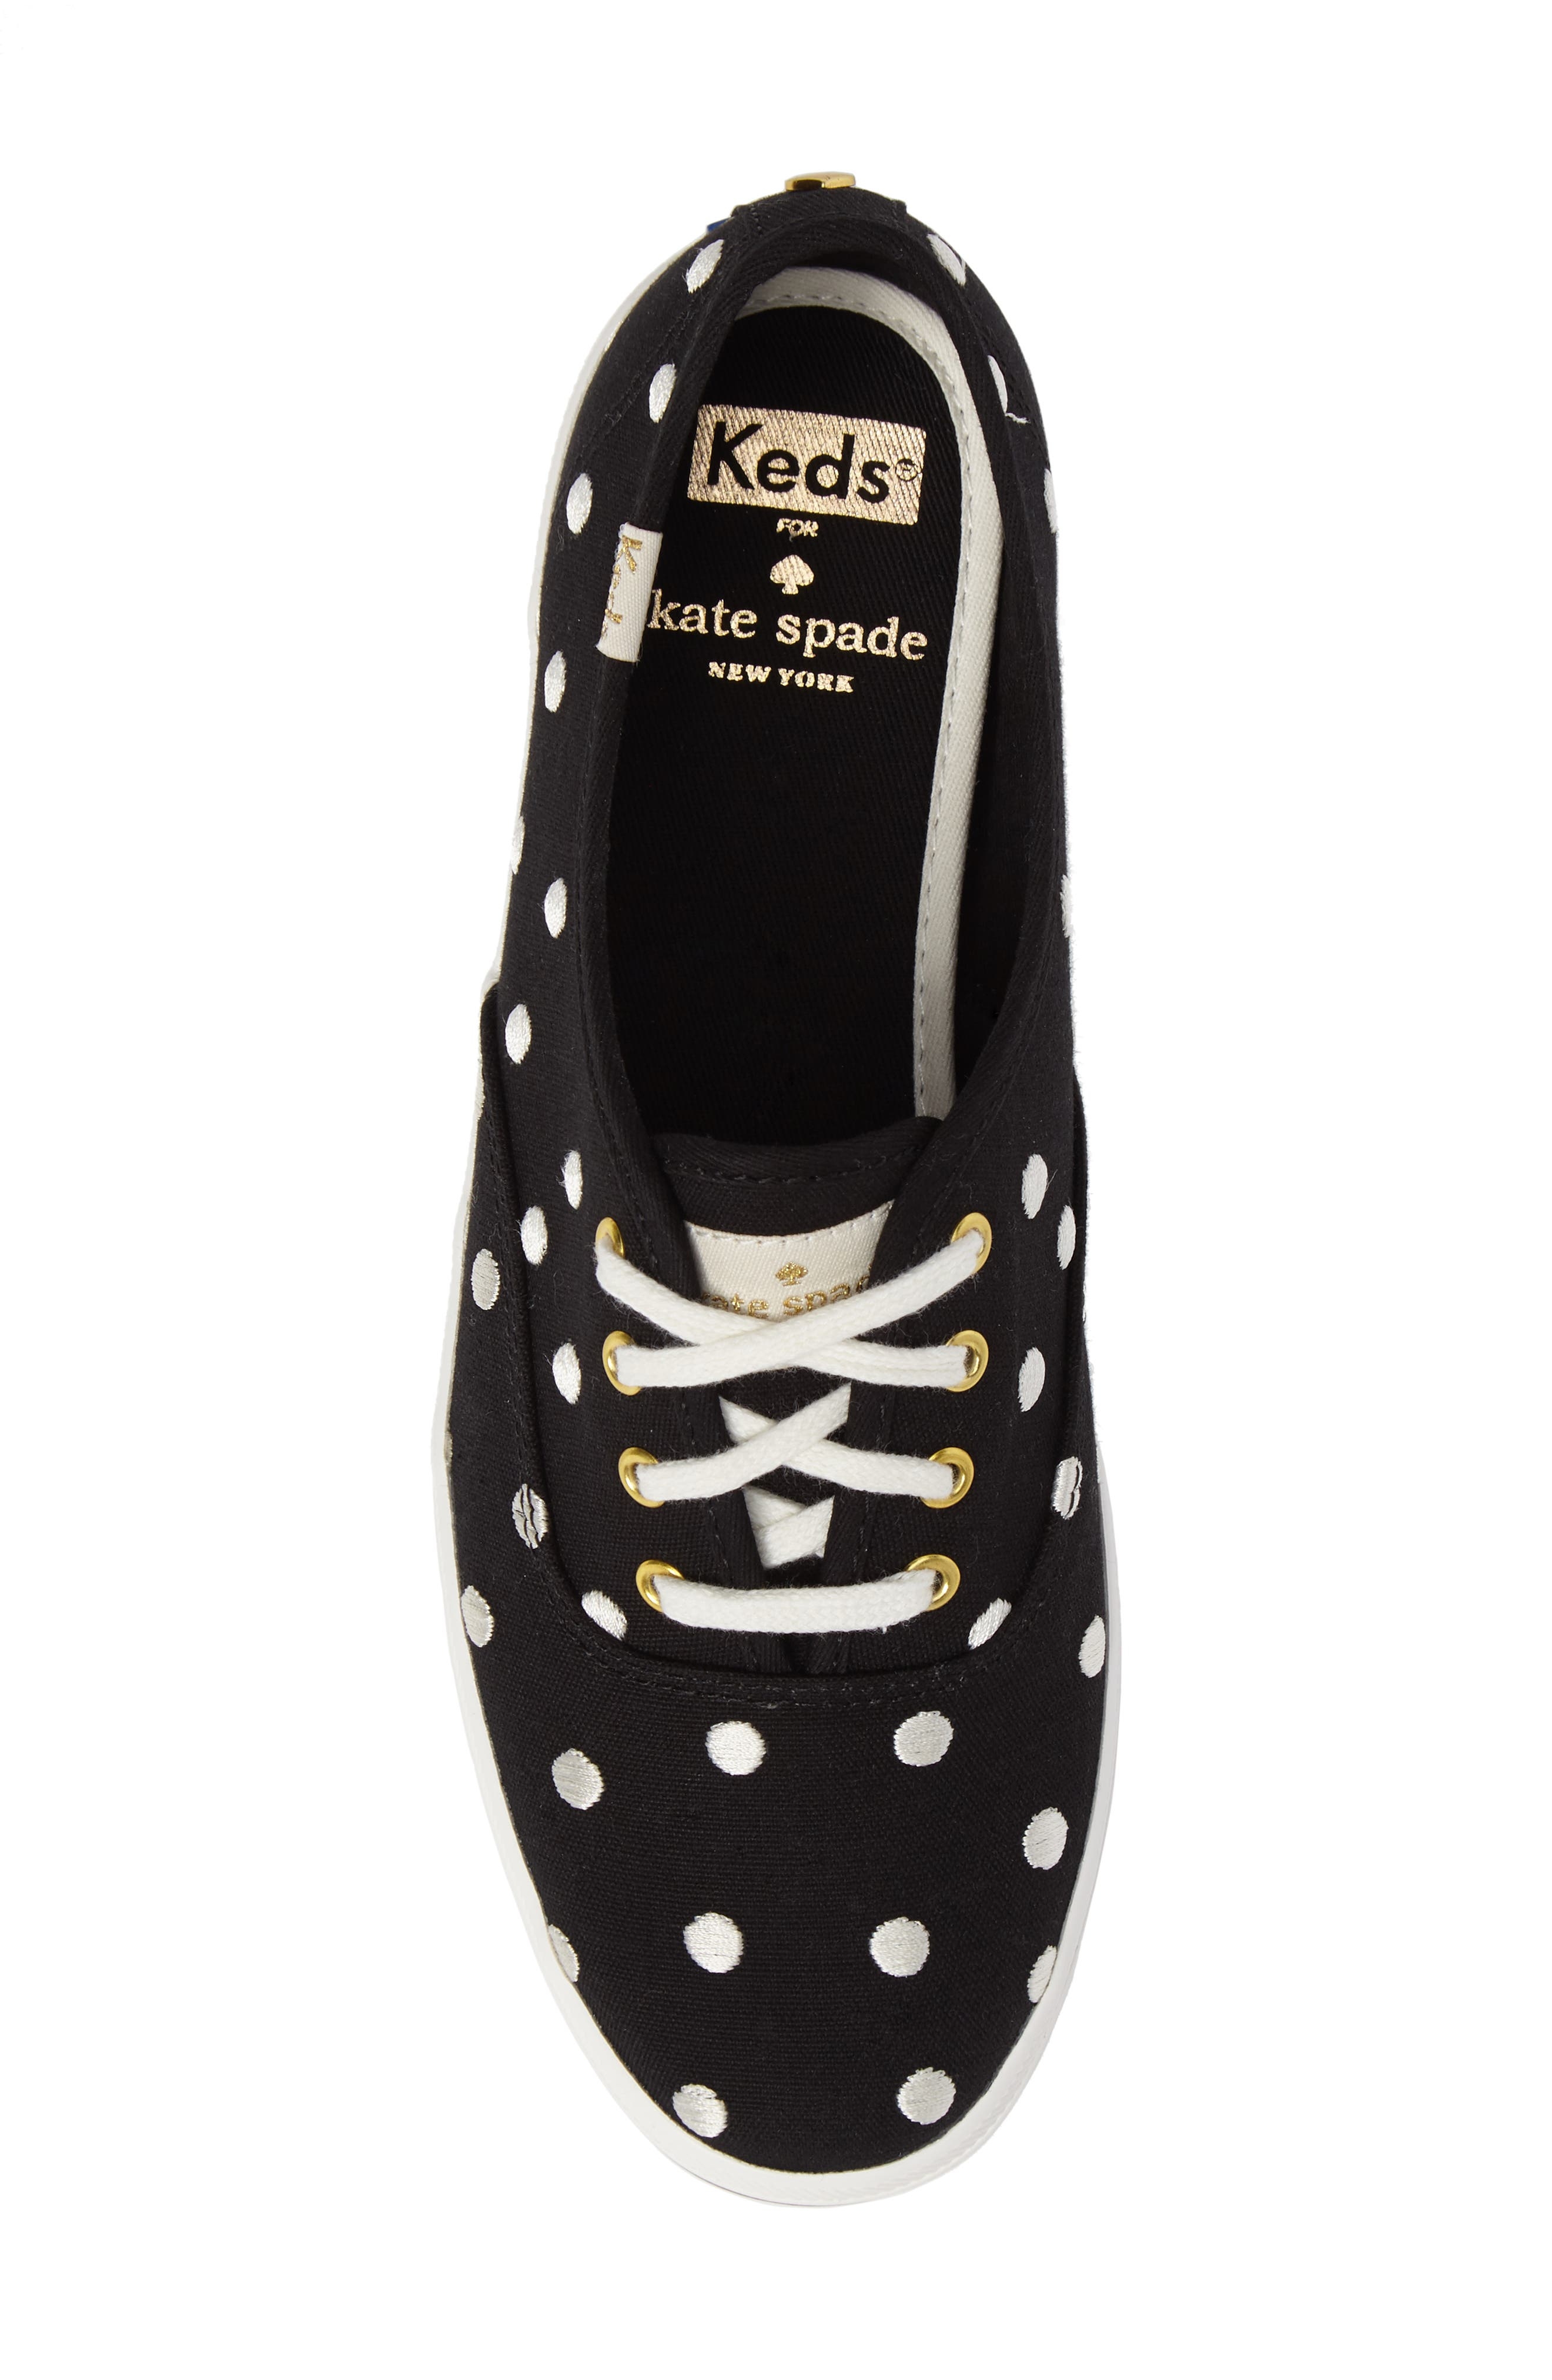 Keds<sup>®</sup> x kate spade new york champion sneaker,                             Alternate thumbnail 17, color,